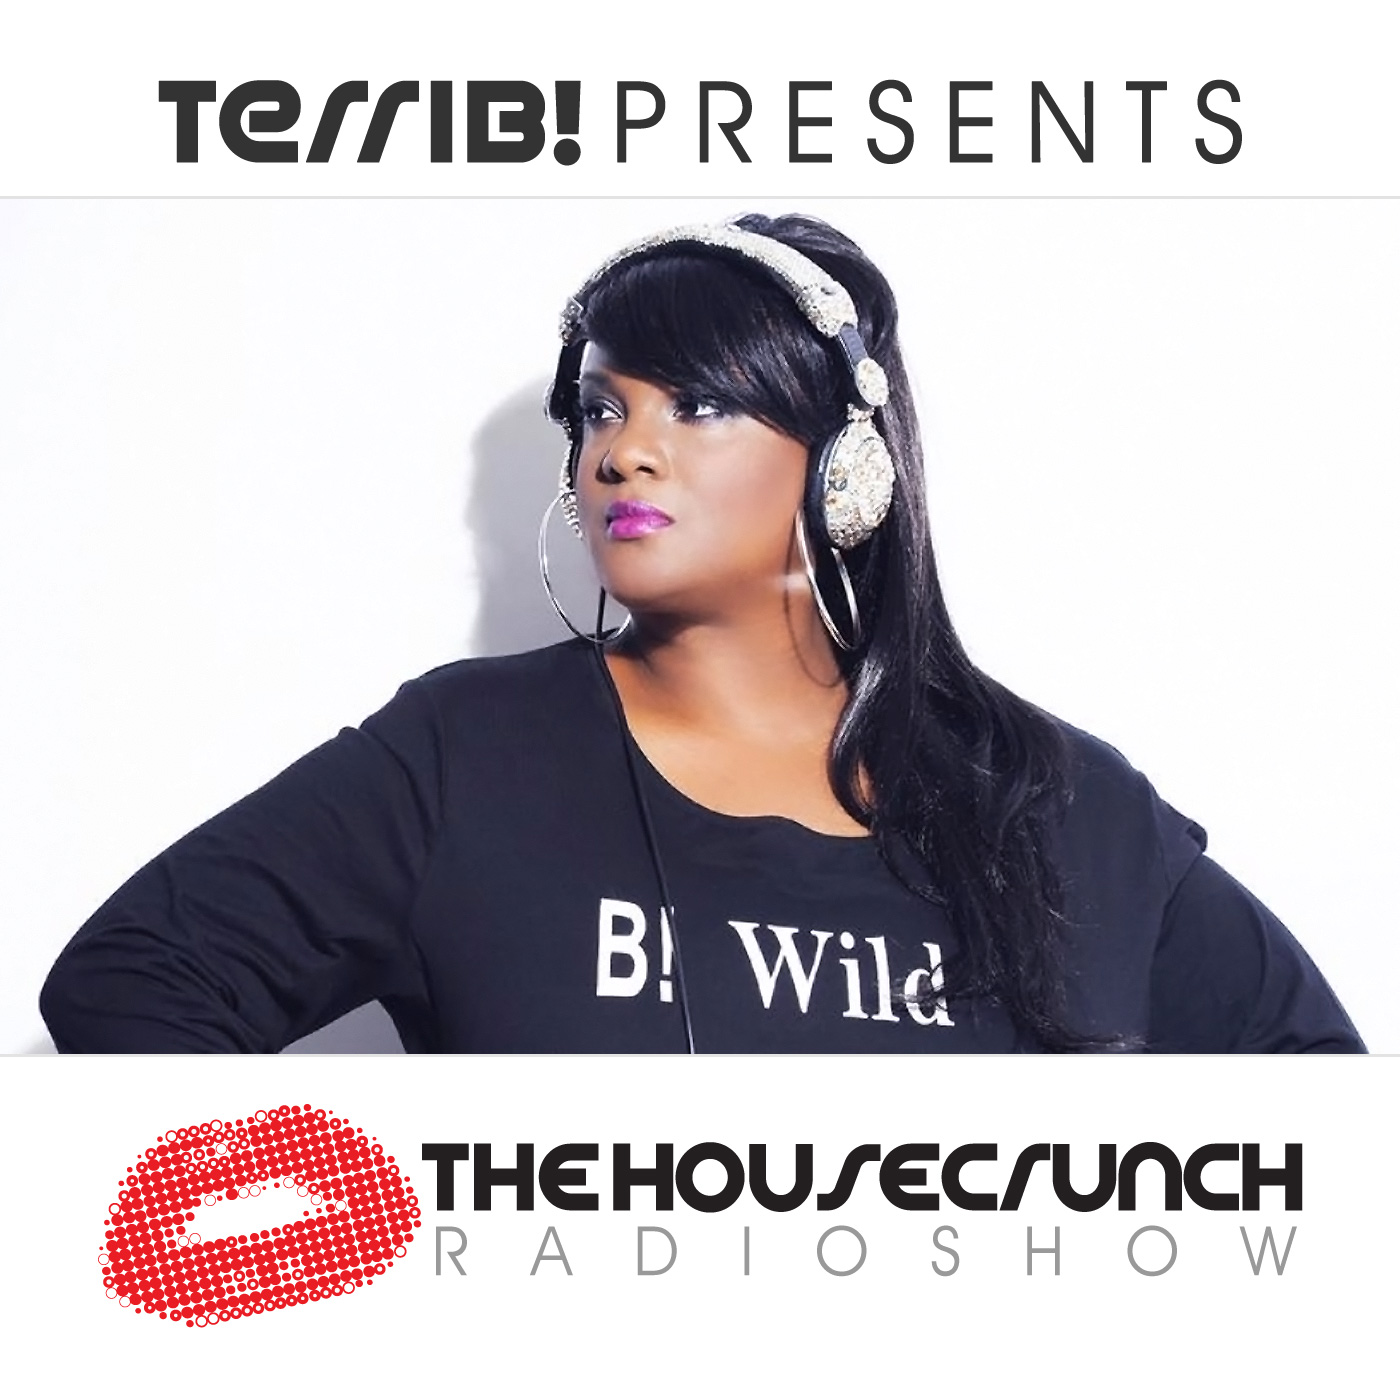 The HouseCrunch Radio Show